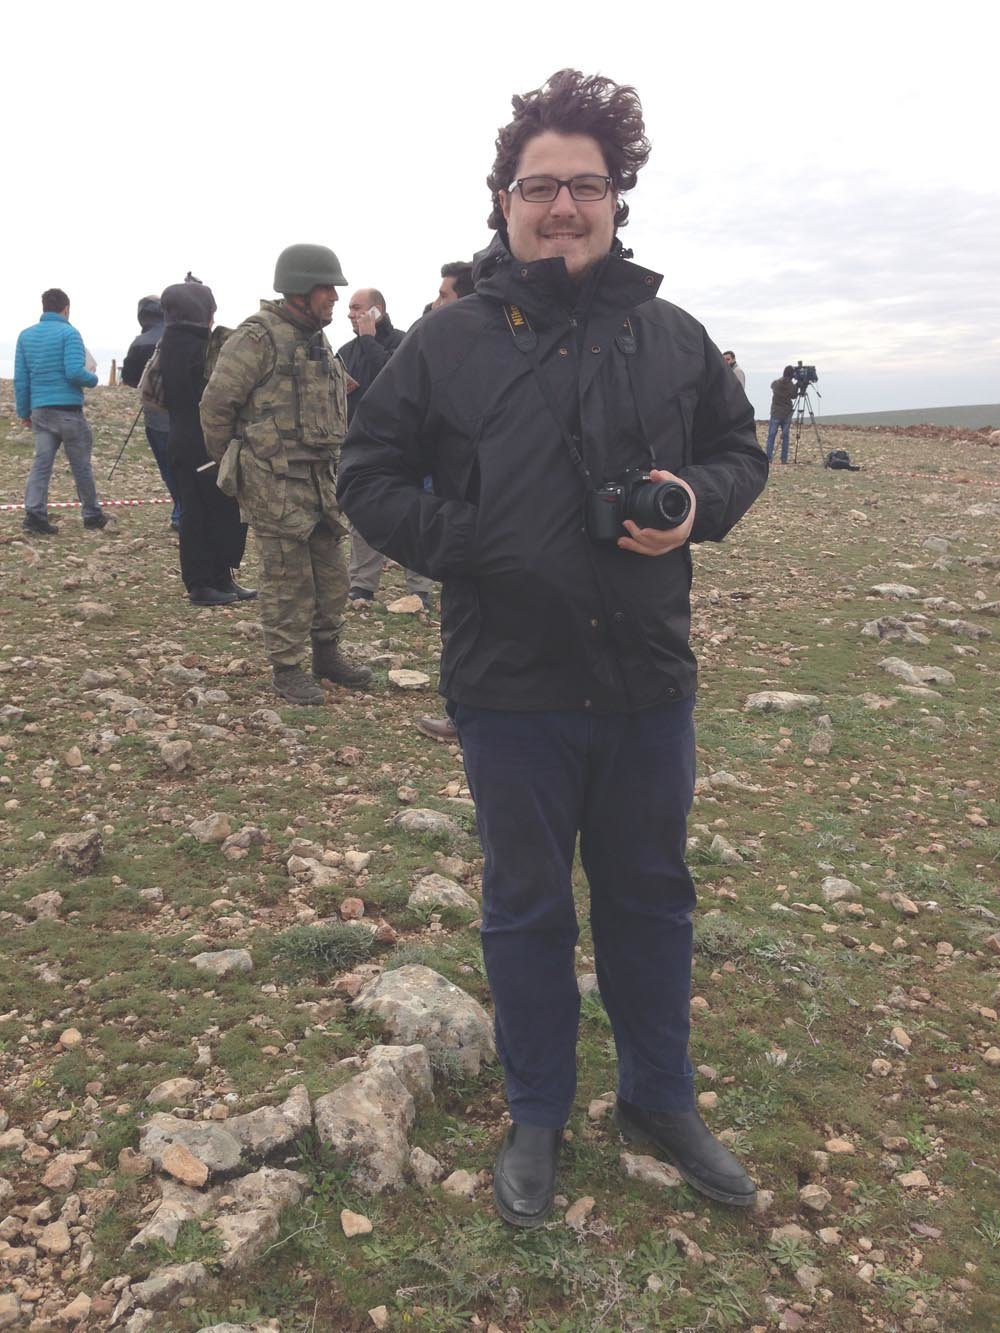 While a journalist in 2013, Omer Onder is at the Turkey and Syria border following a story about Syrian refugees entering Turkey.